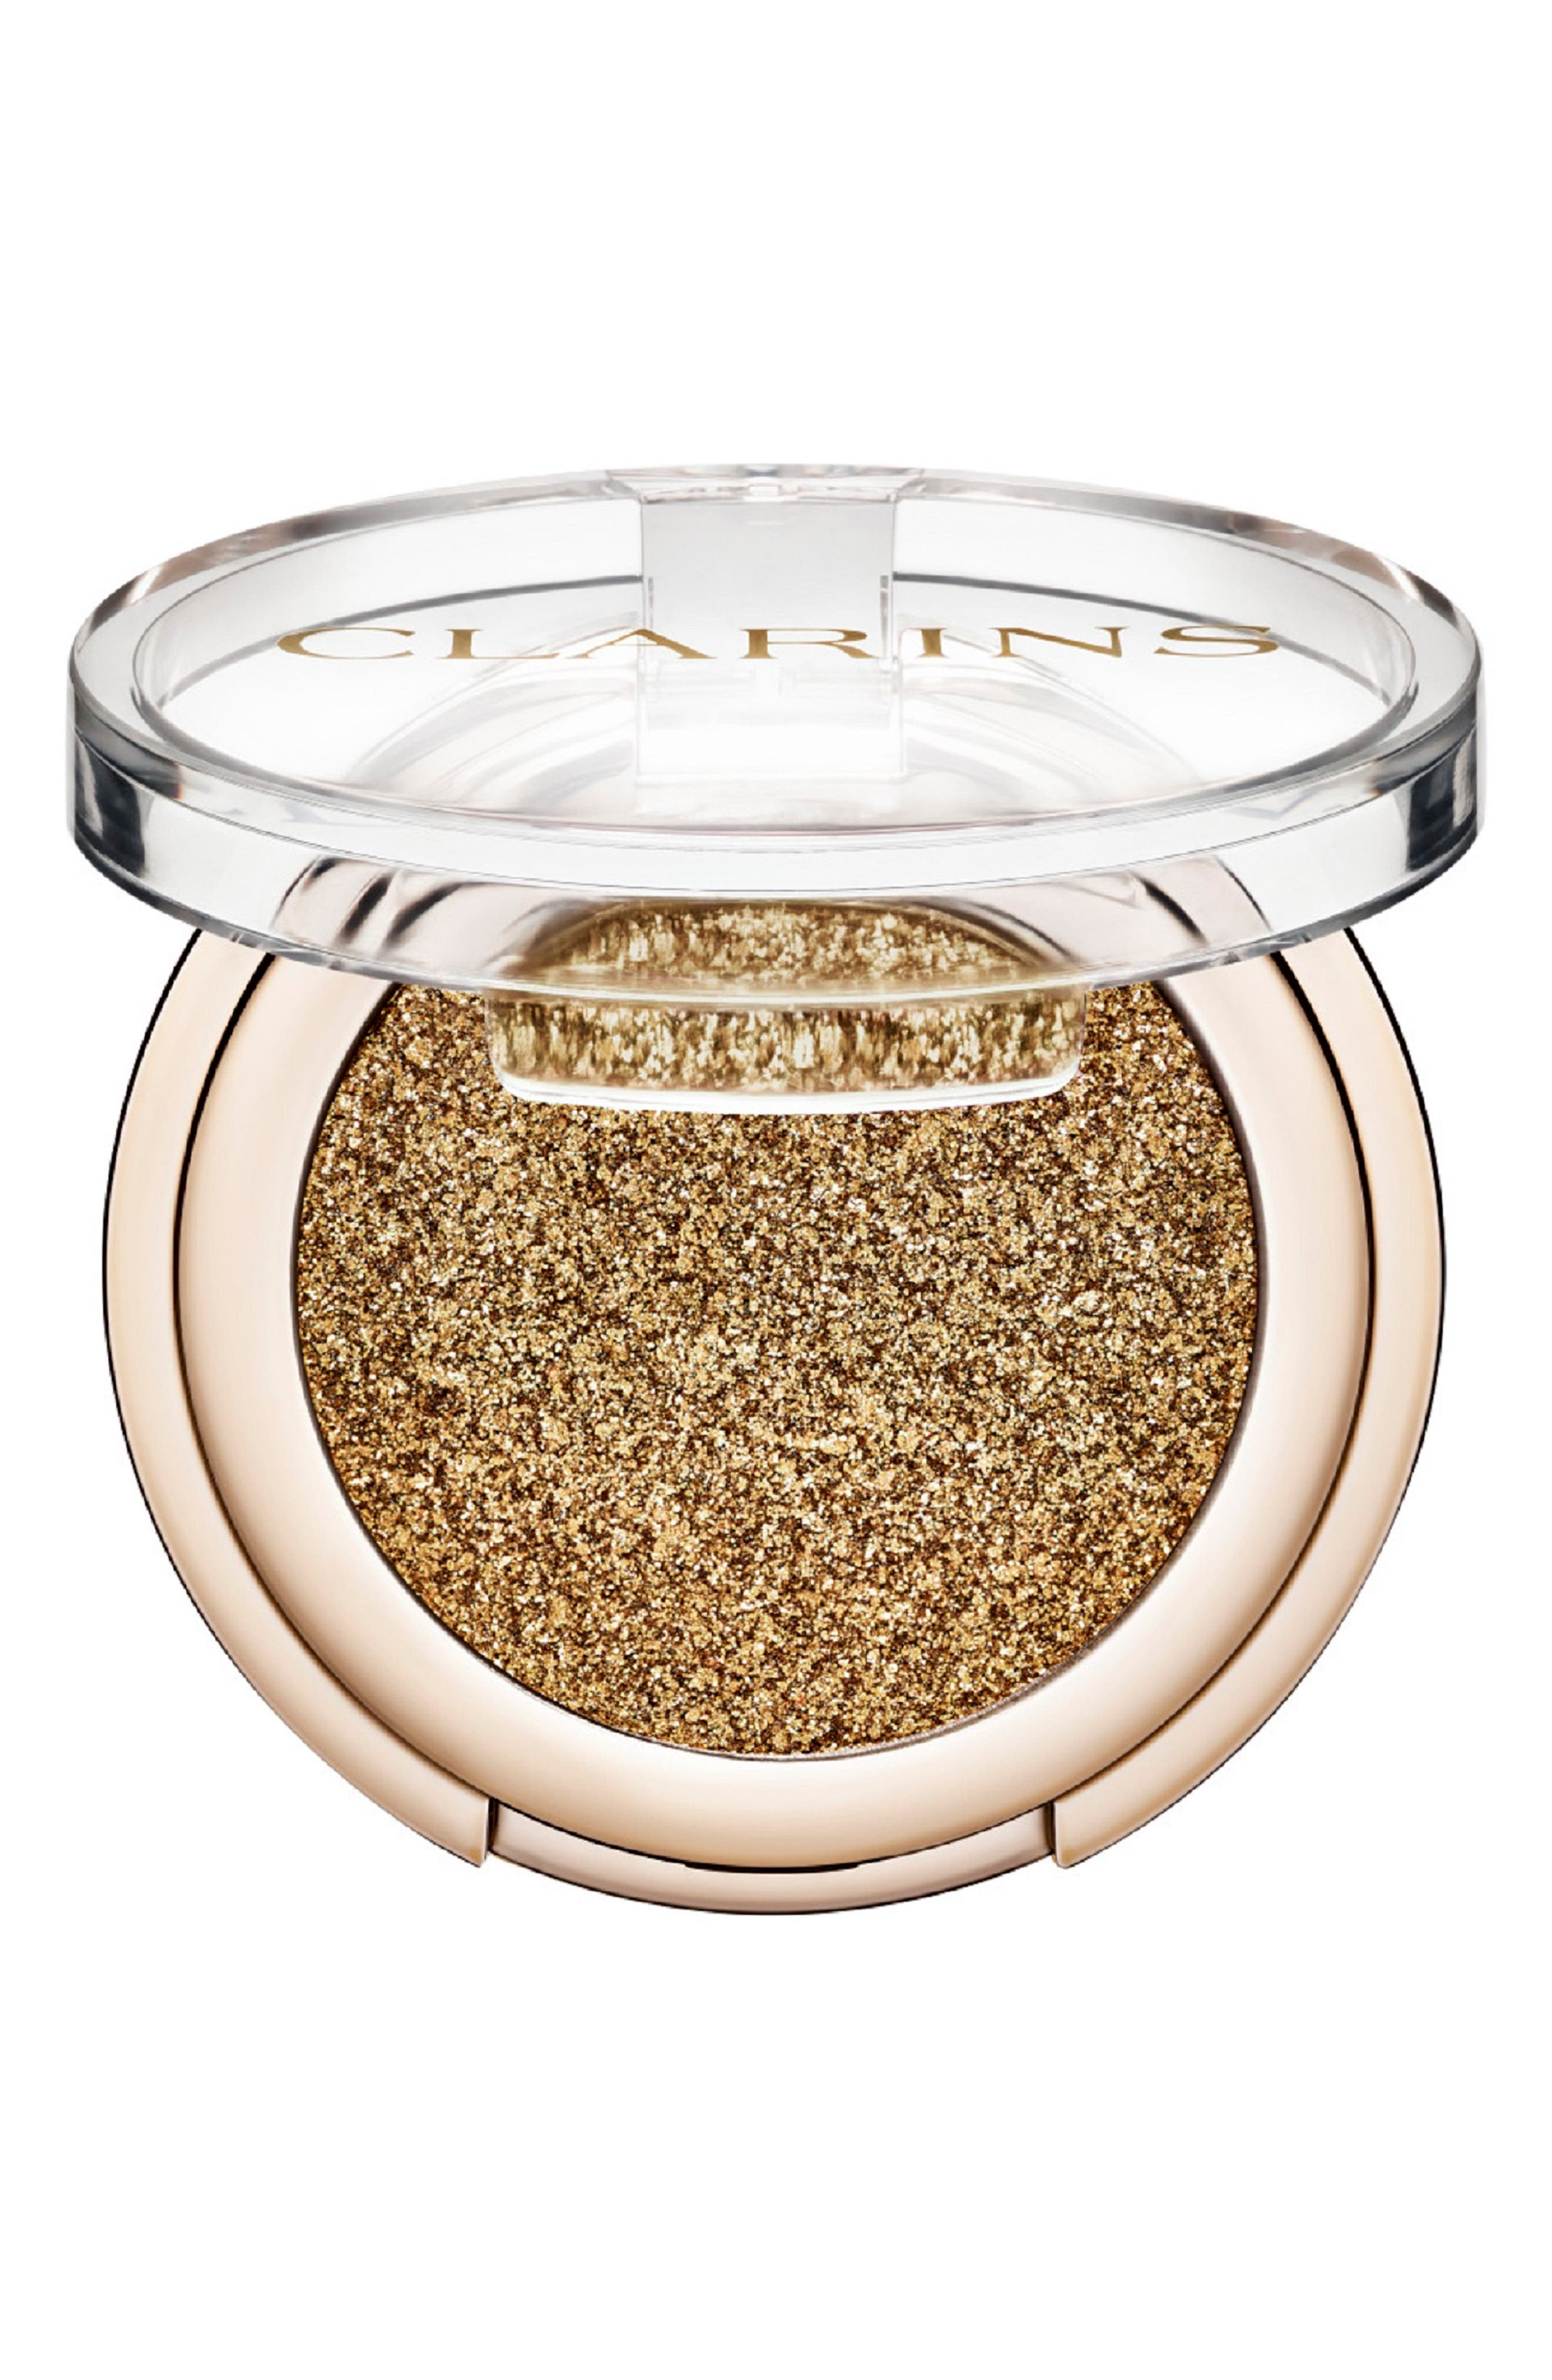 What it is: A sparkling powder eyeshadow that soothes, nourishes and protects the delicate skin on your eyelids while delivering bold metallic pigments. What it does: The stay-put eyeshadow features a sensorial formula that glides on with your fingertips without flaking onto your cheeks, and delivers intense and immediate color results. It\\\'s long-lasting and is great for creating a daring eye look. How to use: Apply with your fingertip or a smudge